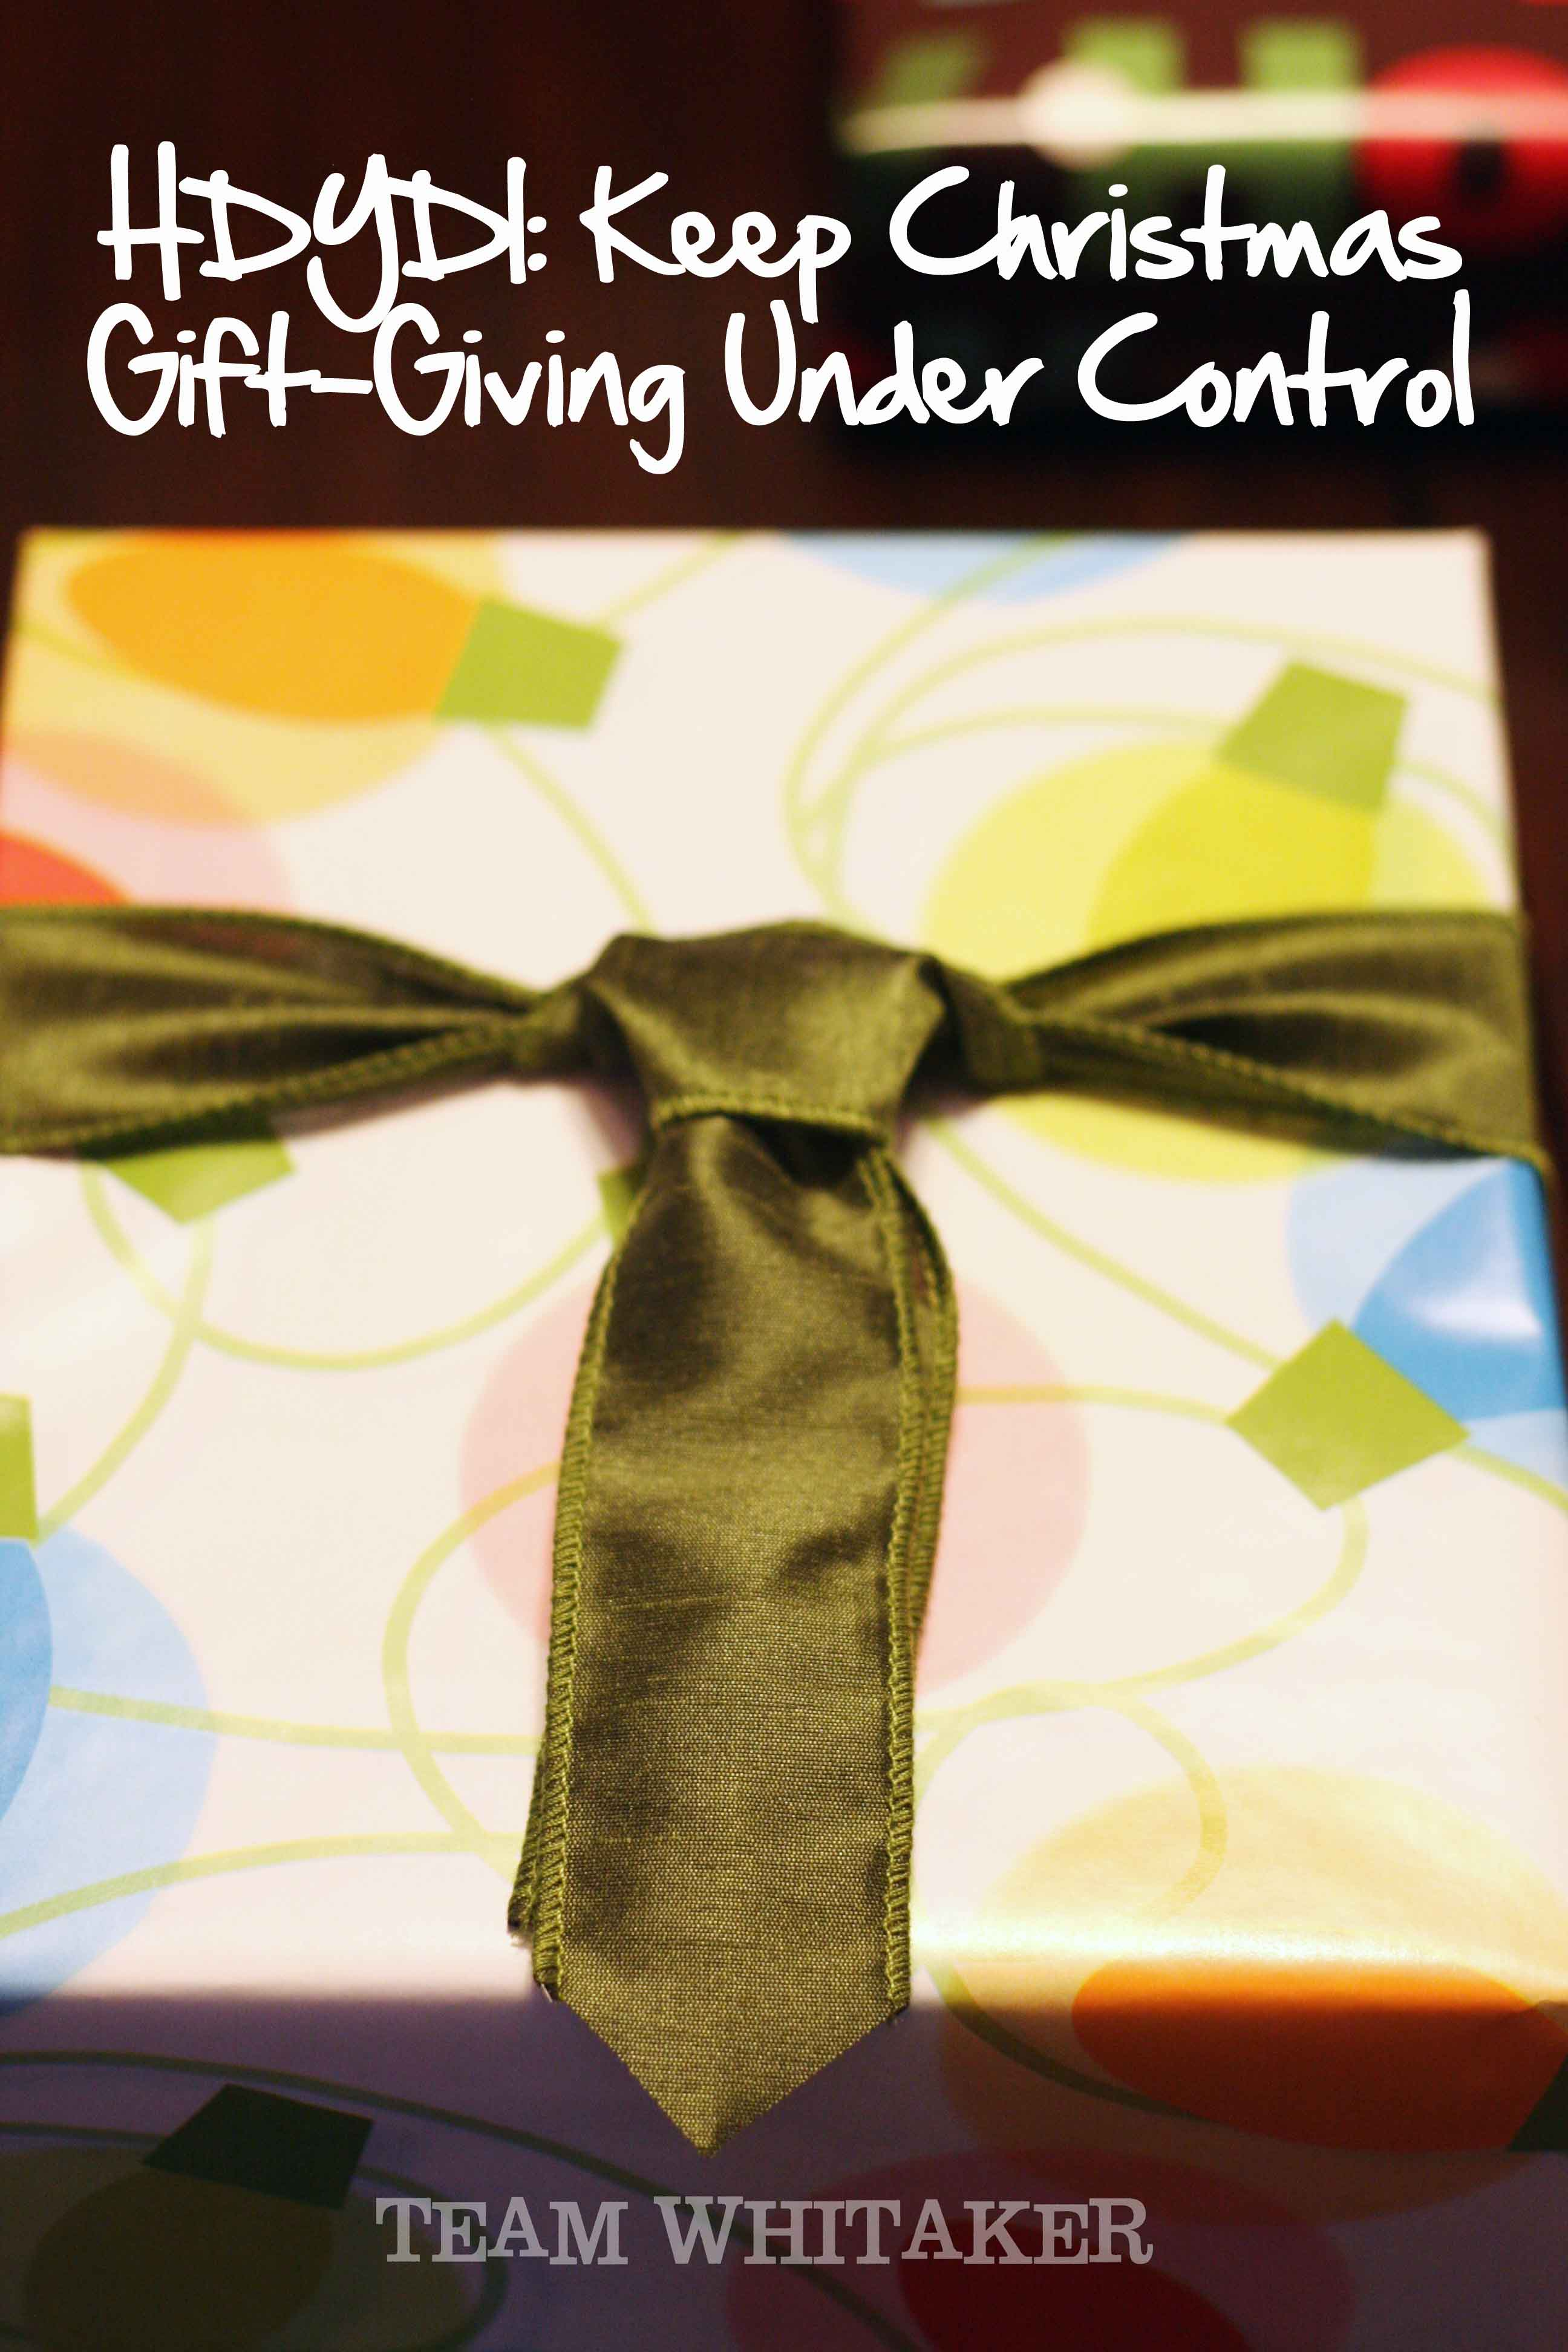 We all love gifts. We love to give them and receive them. The challenge, is keeping the gift giving under control during the holidays. Here are a few practical solutions in helping you give with purpose this Christmas.